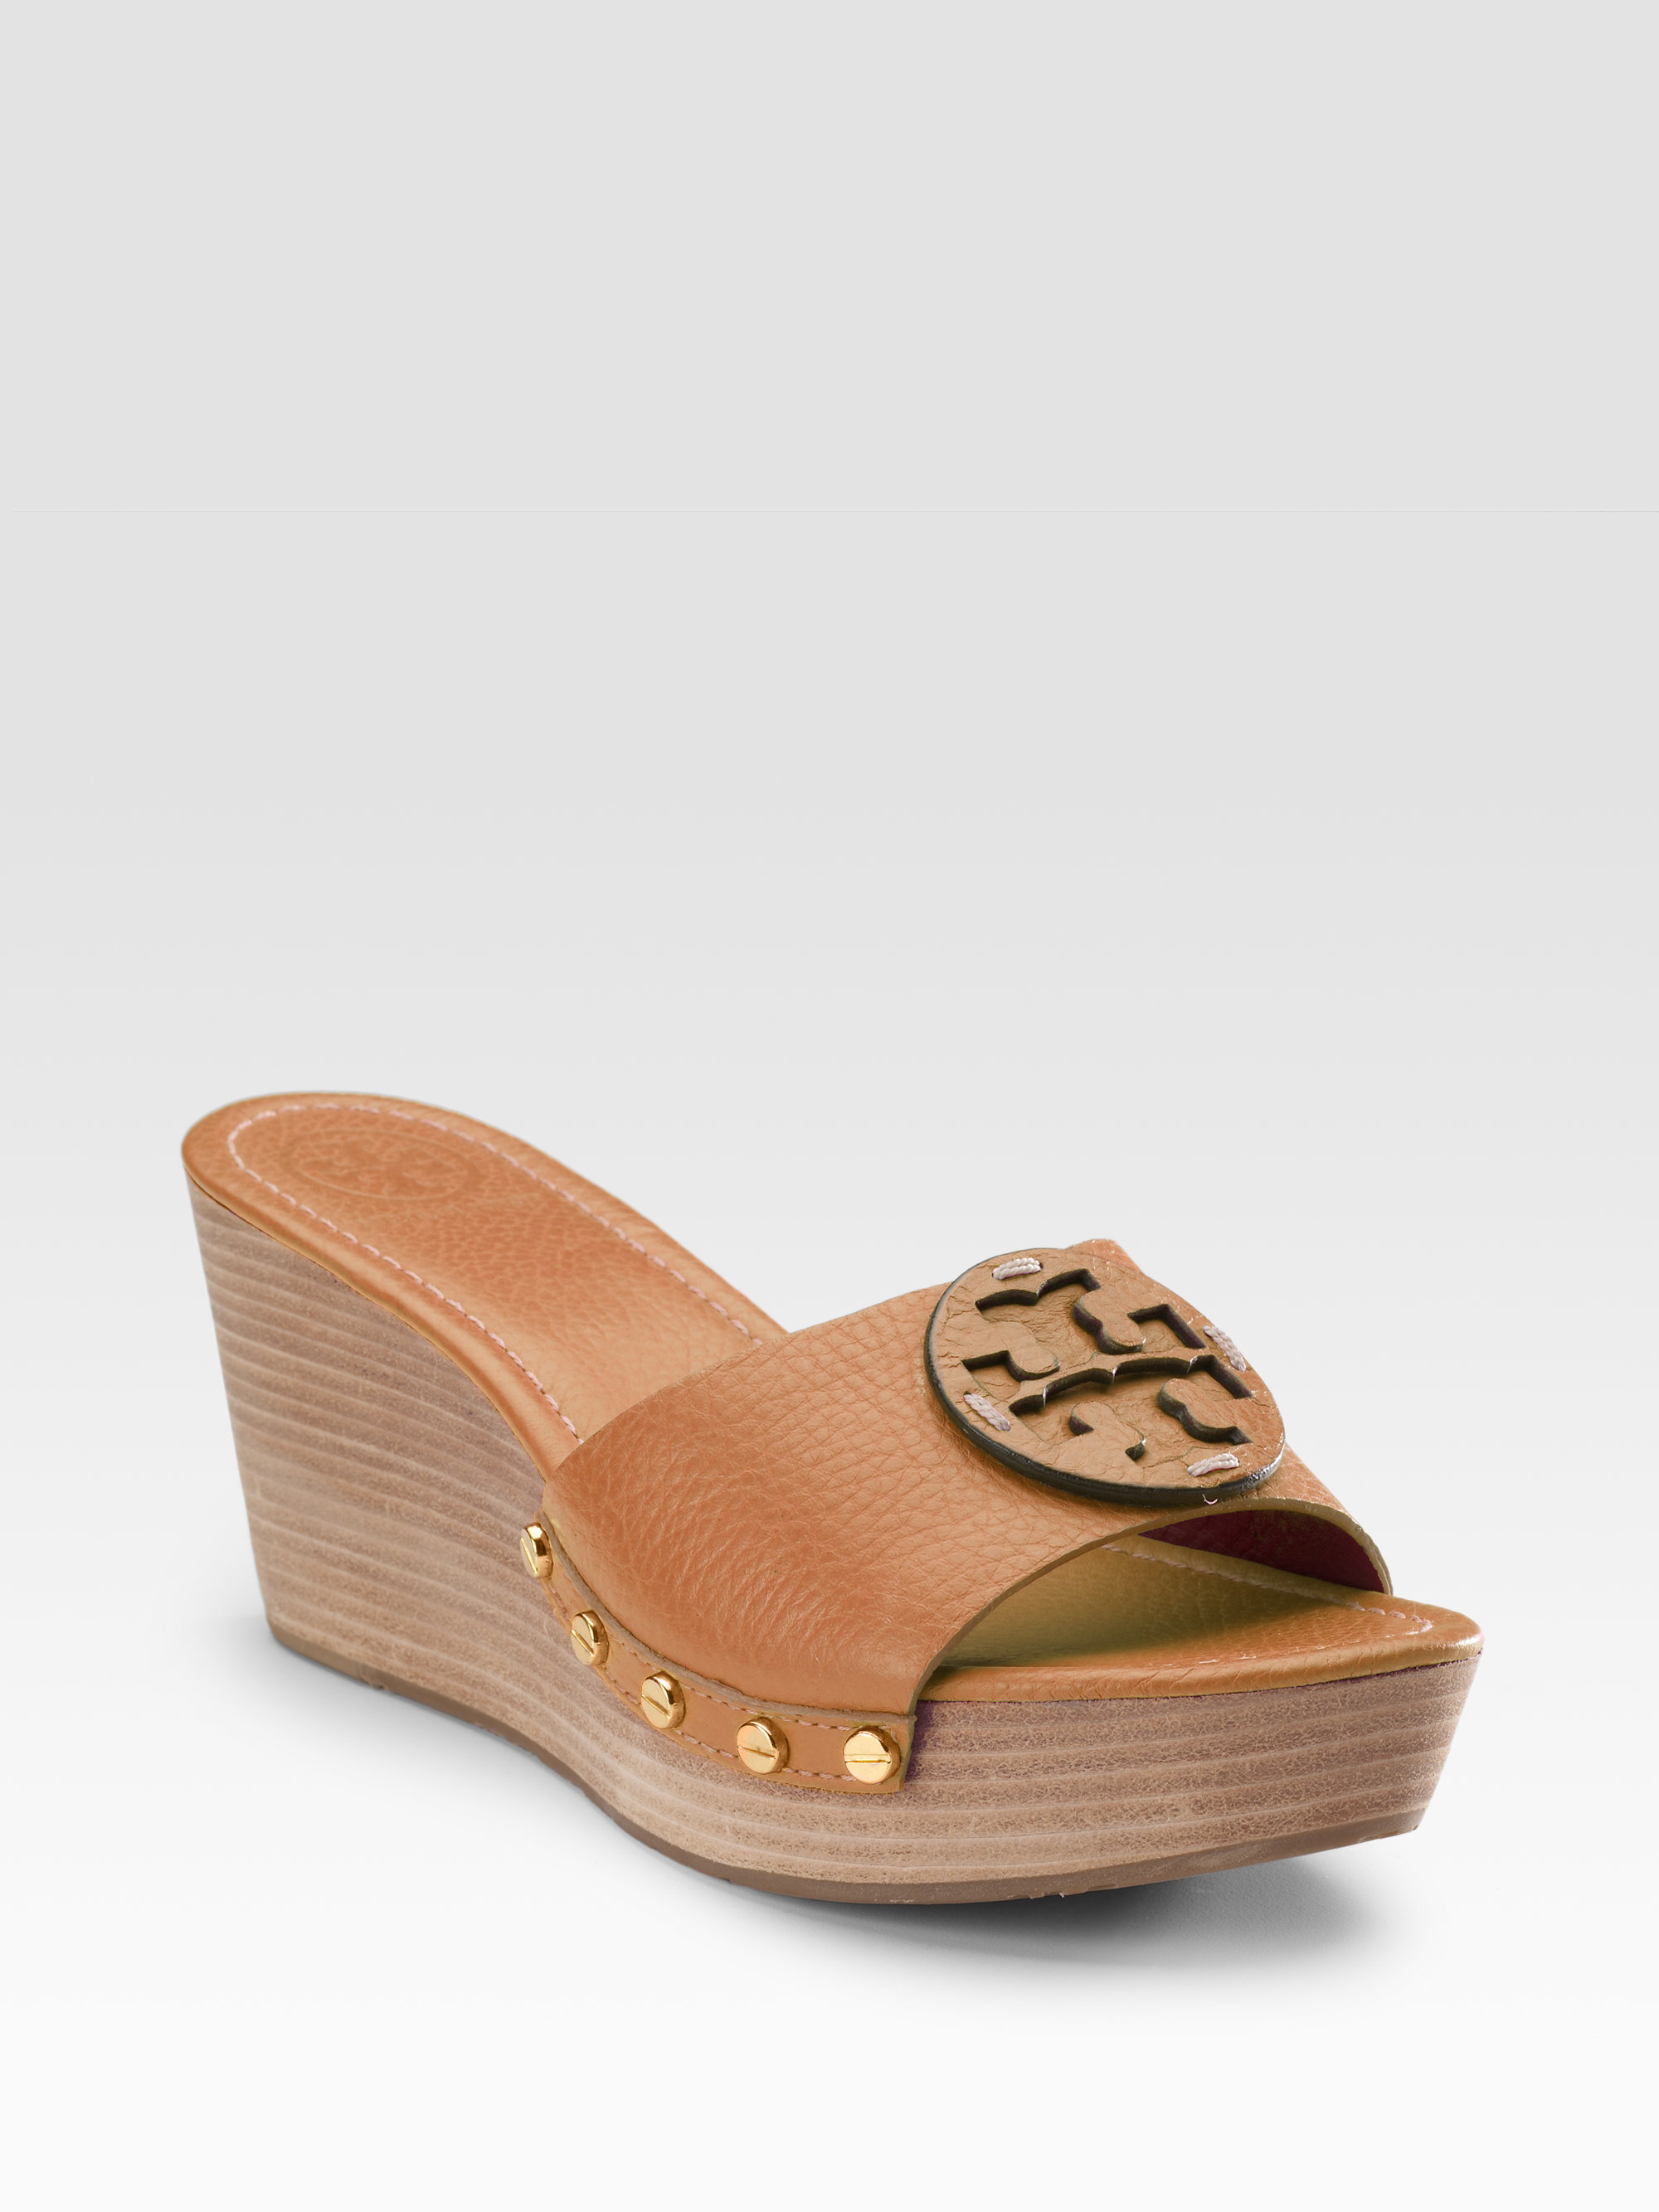 a339bca4f10 Wedge Shoes  Tory Burch Wedge Shoes